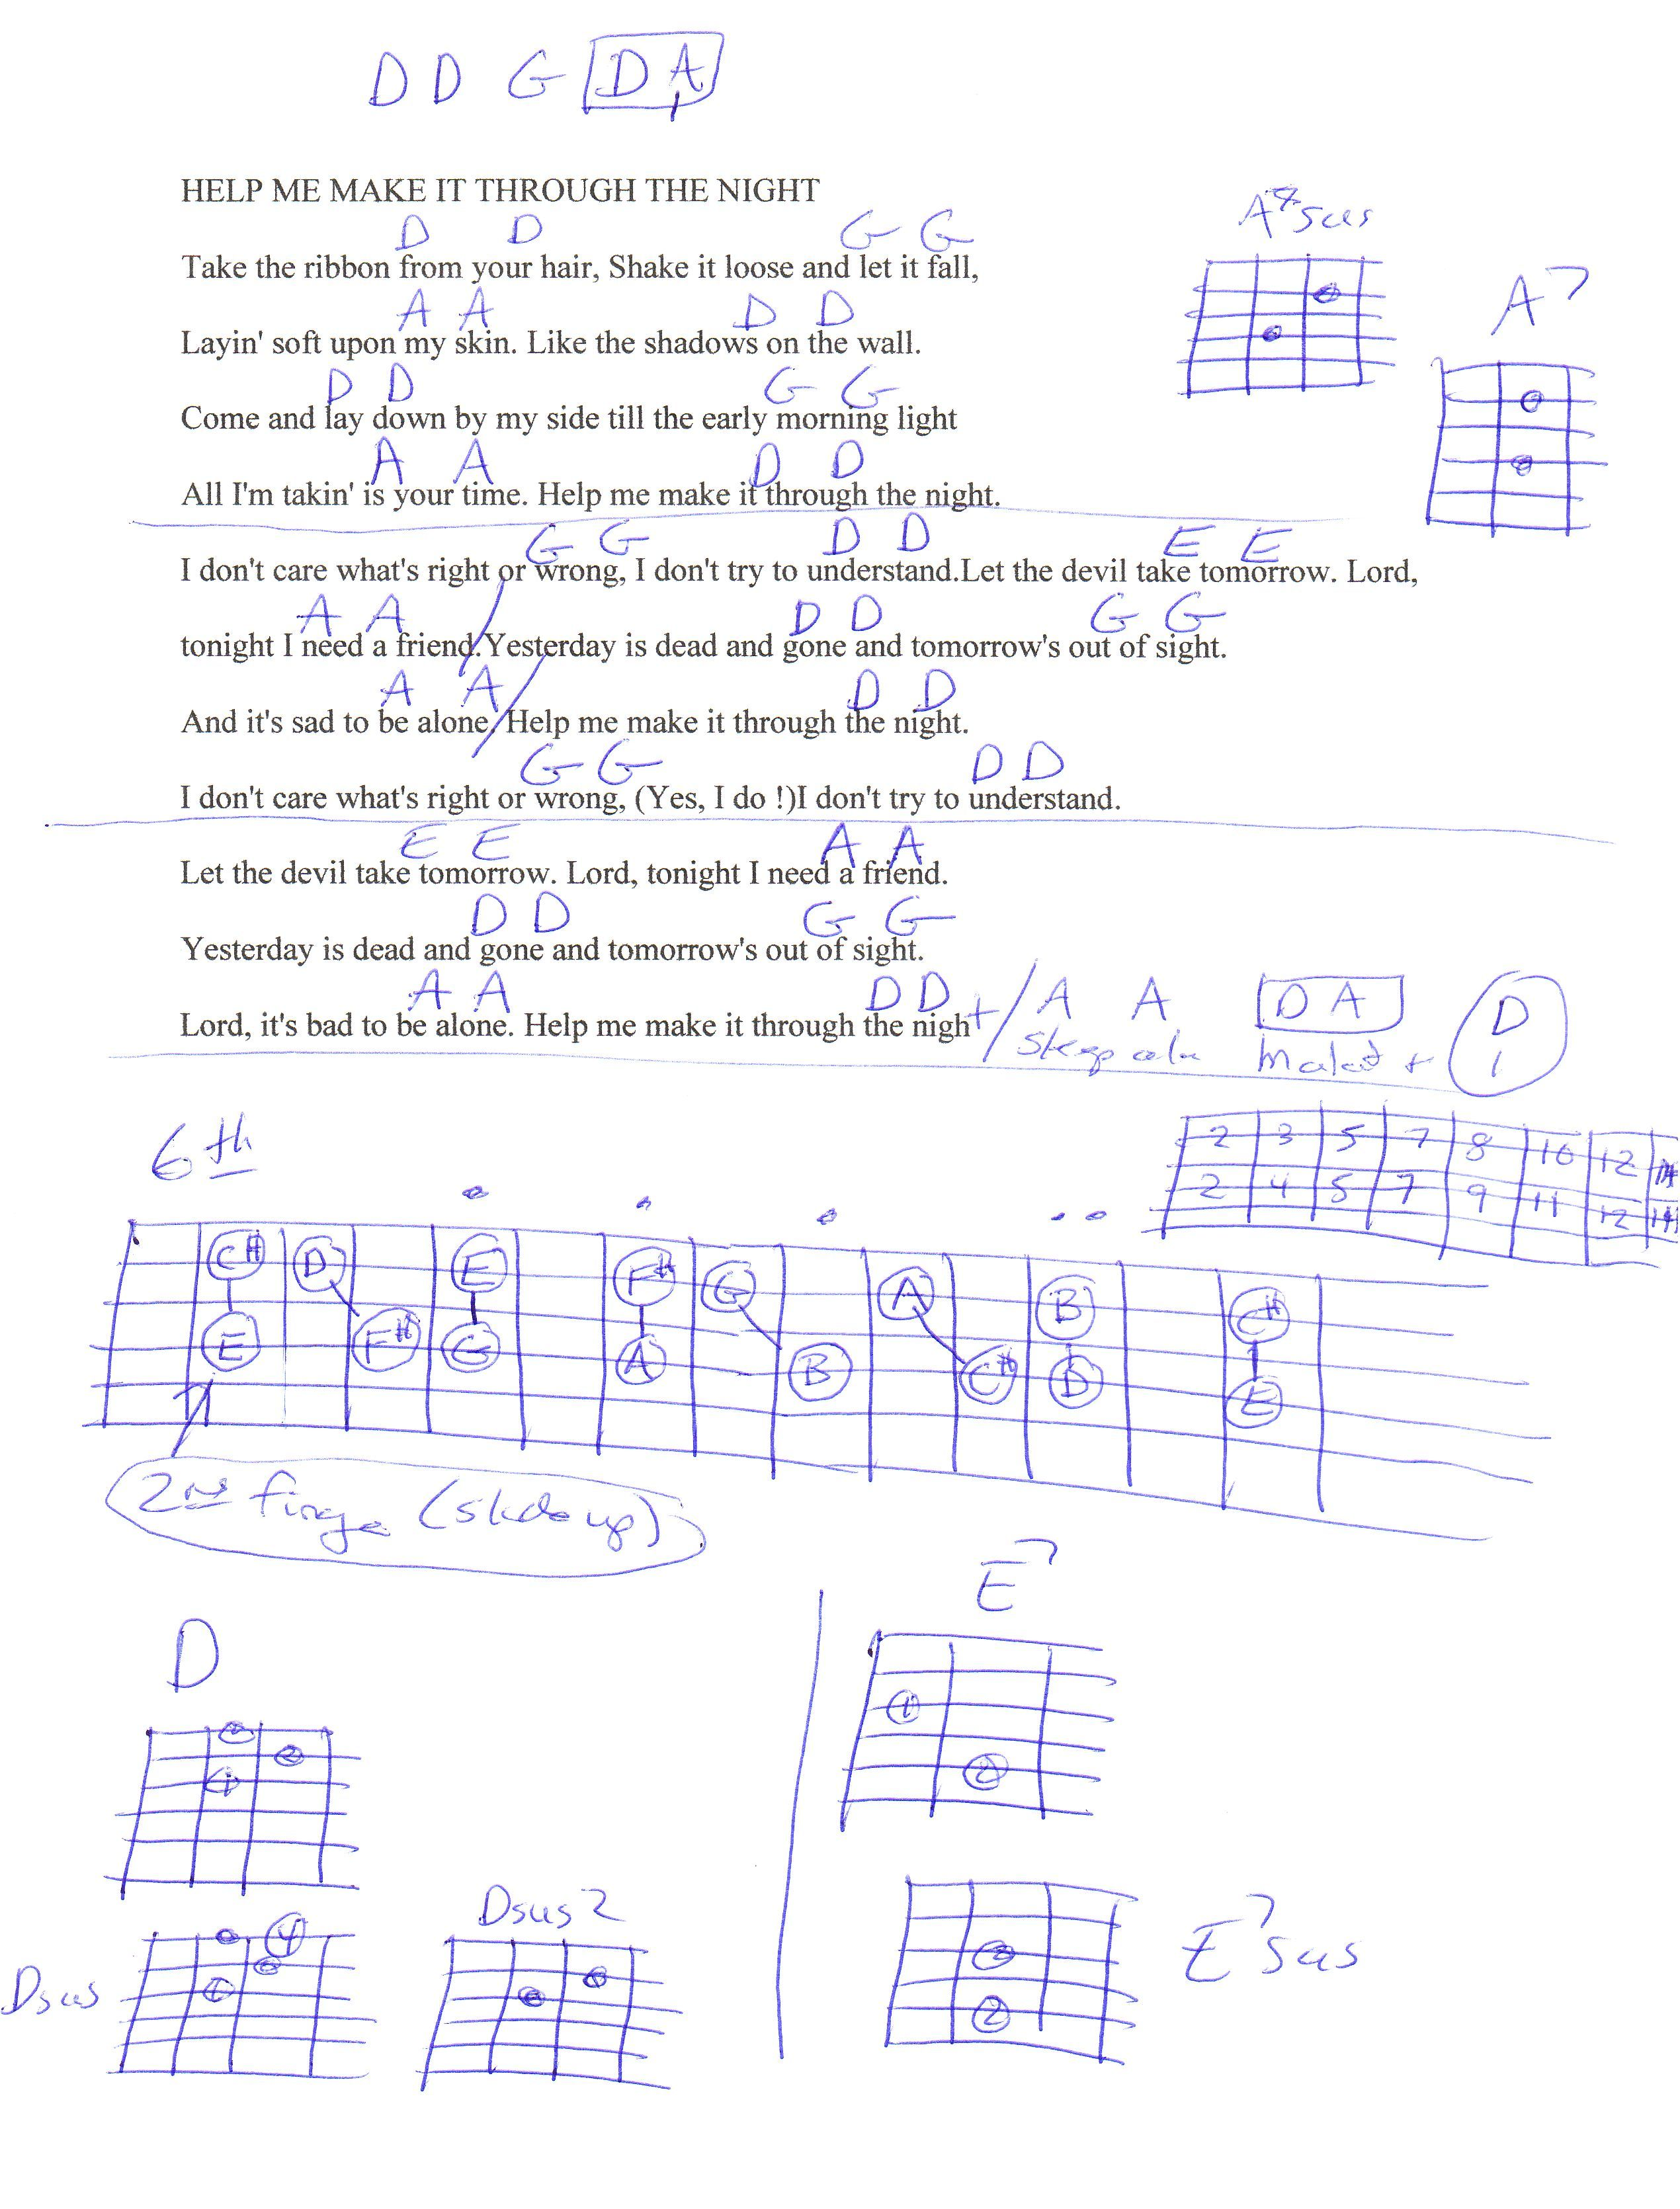 Help me make it through the night elvis guitar chord chart capo help me make it through the night elvis guitar chord chart capo 2nd ccuart Image collections